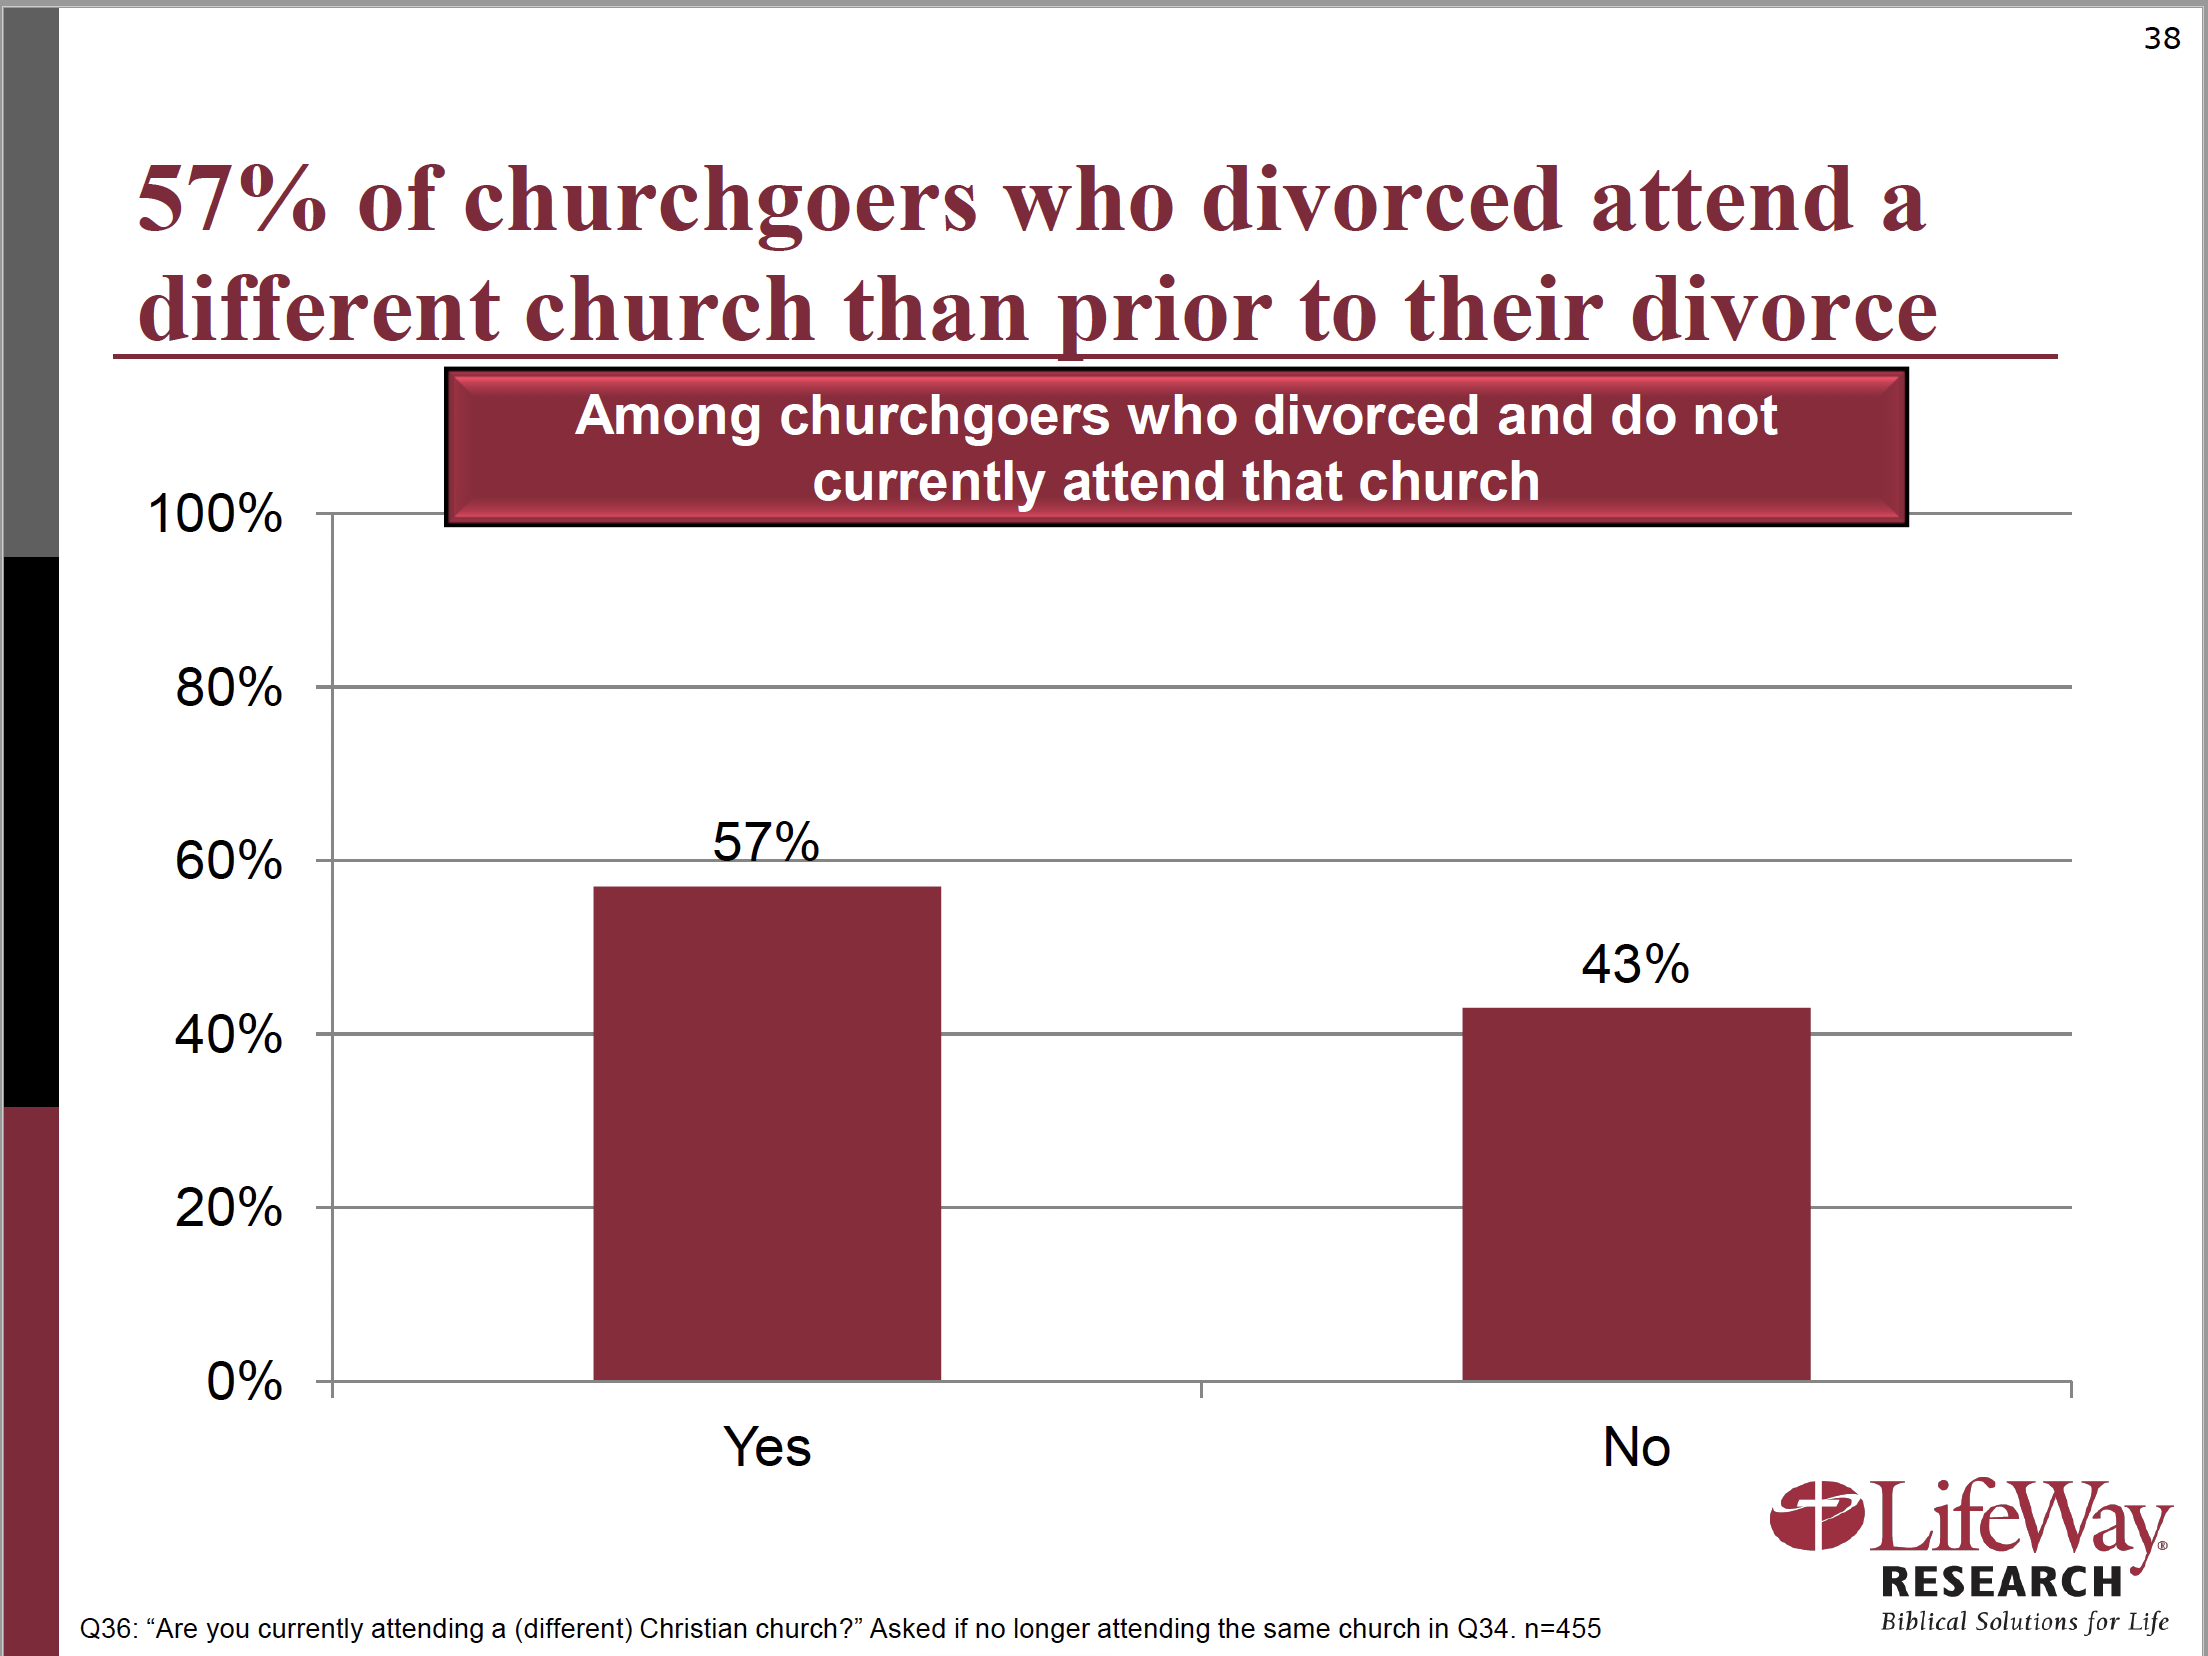 This graph shows that nearly 6 in 10 churchgoing Christians switch churches when they divorce.